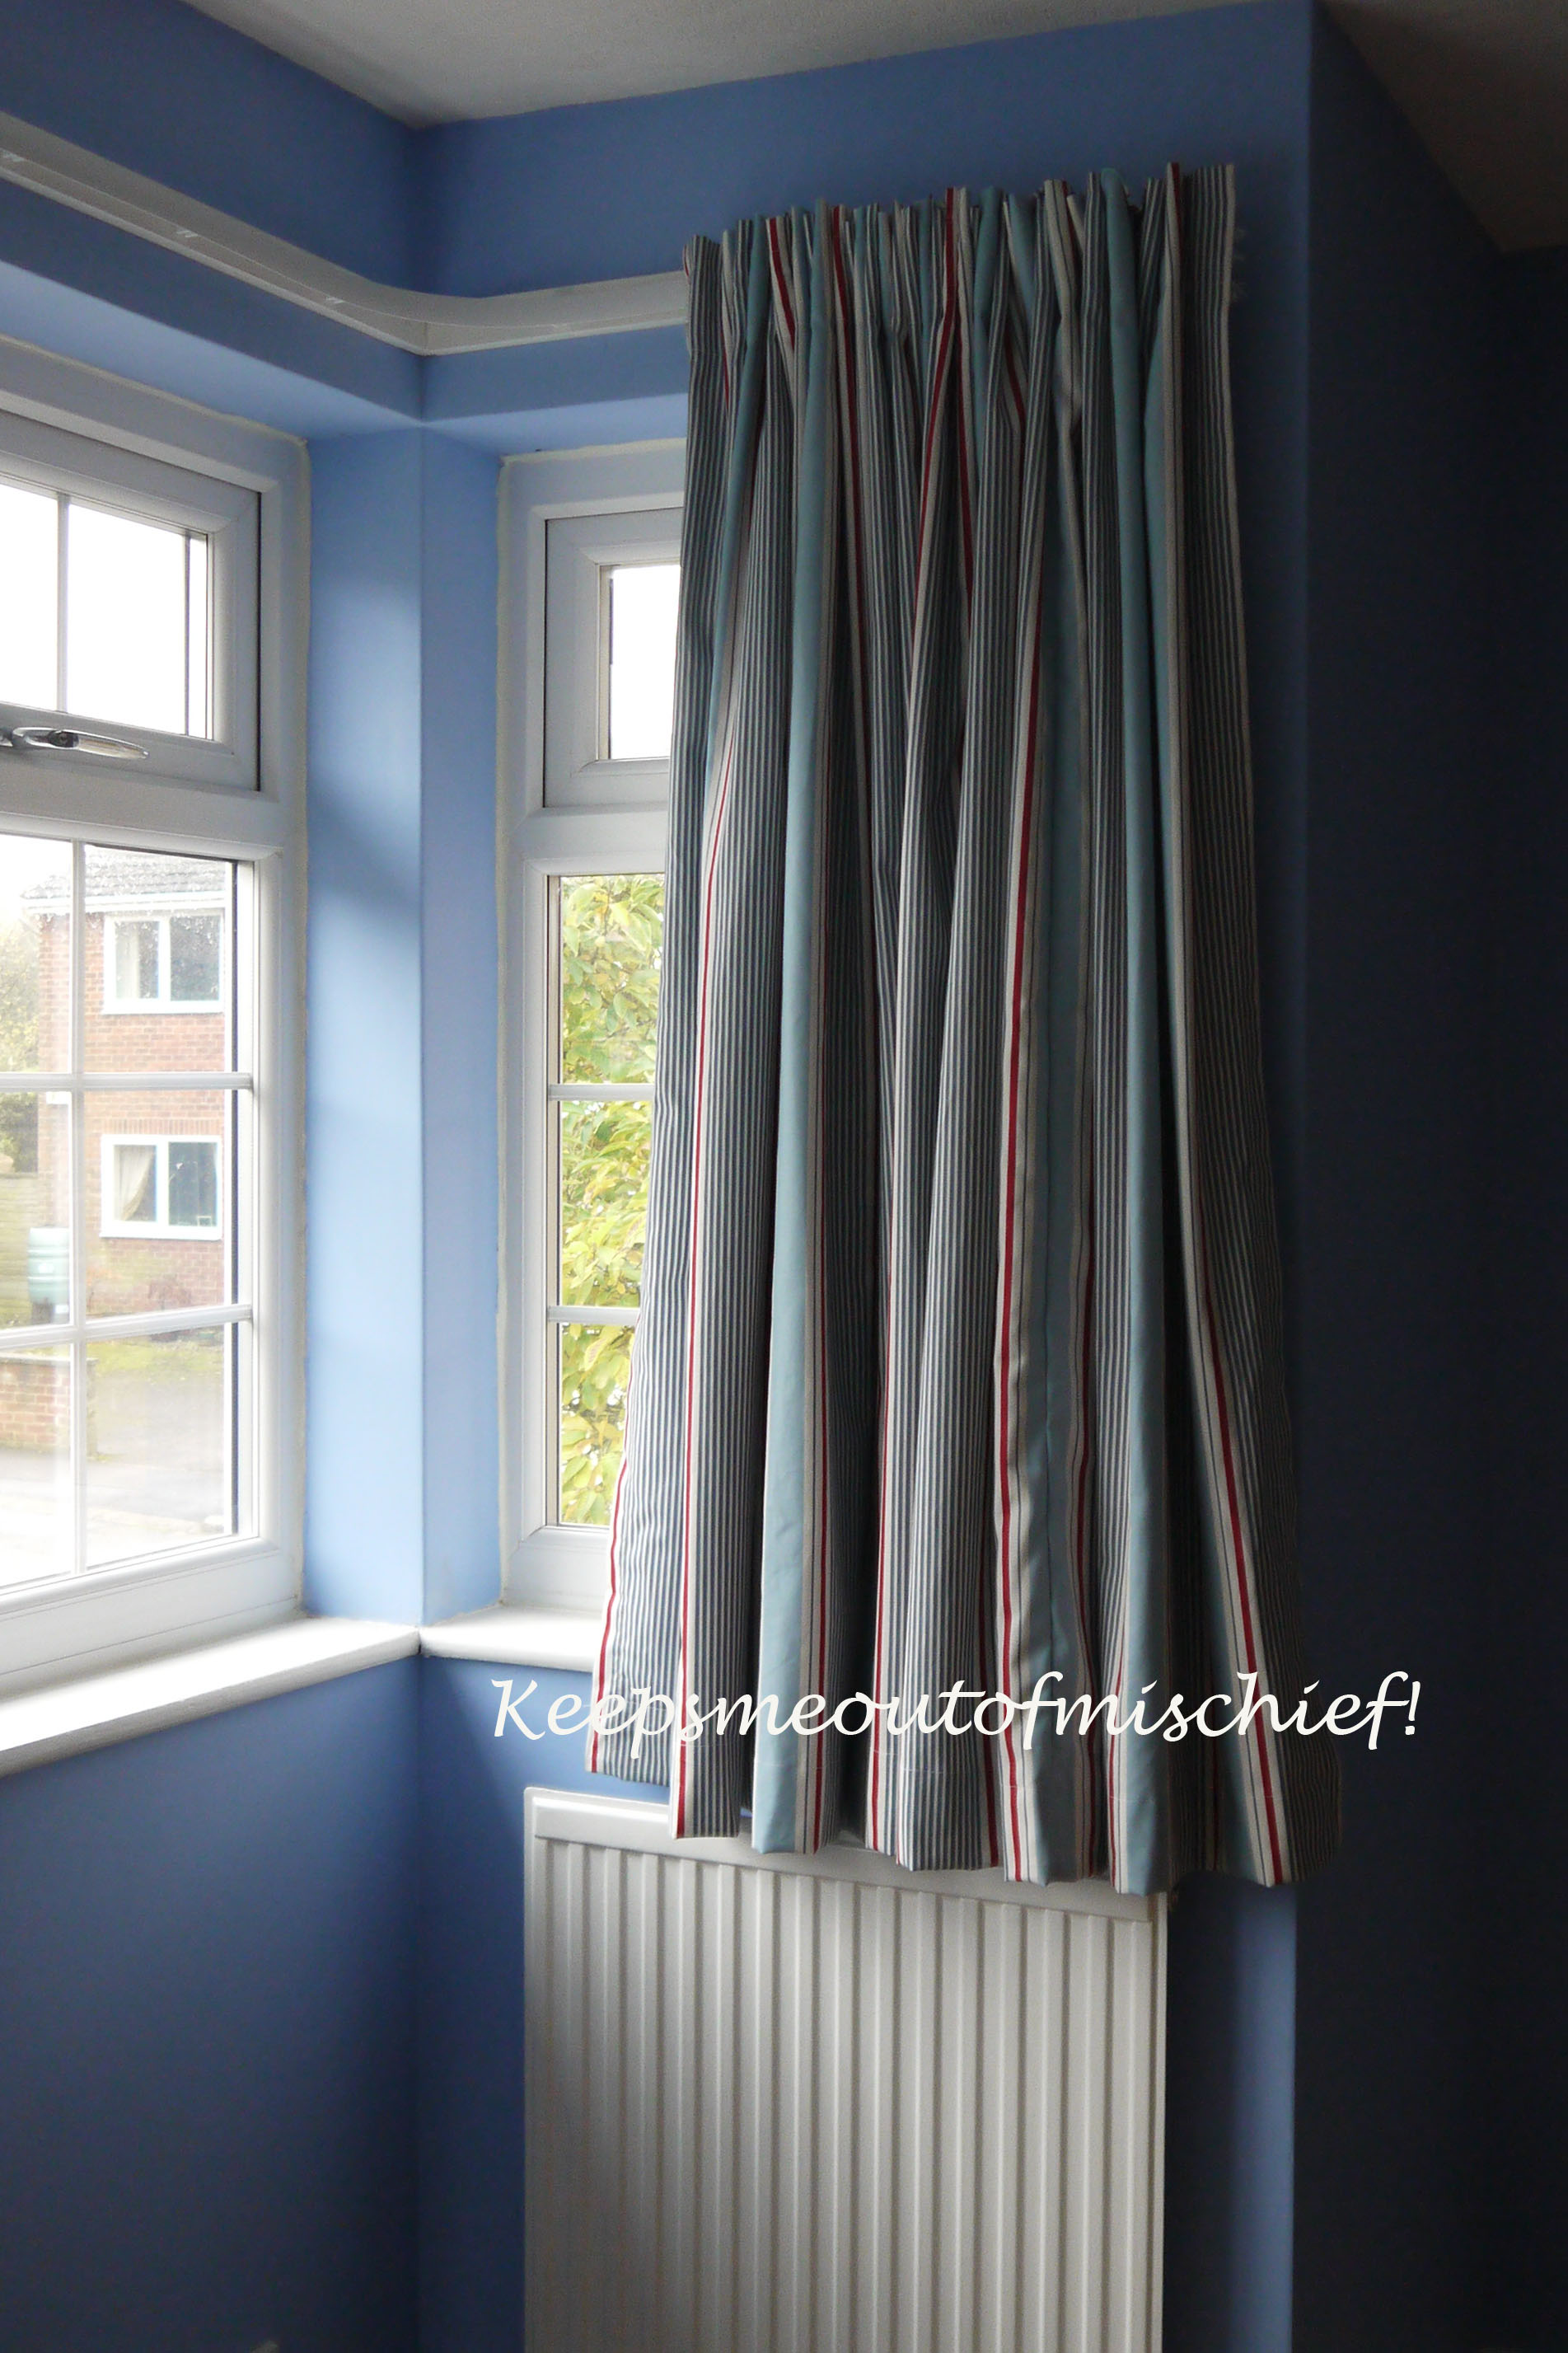 curtains for a big boy s bedroom keepsmeoutofmischief